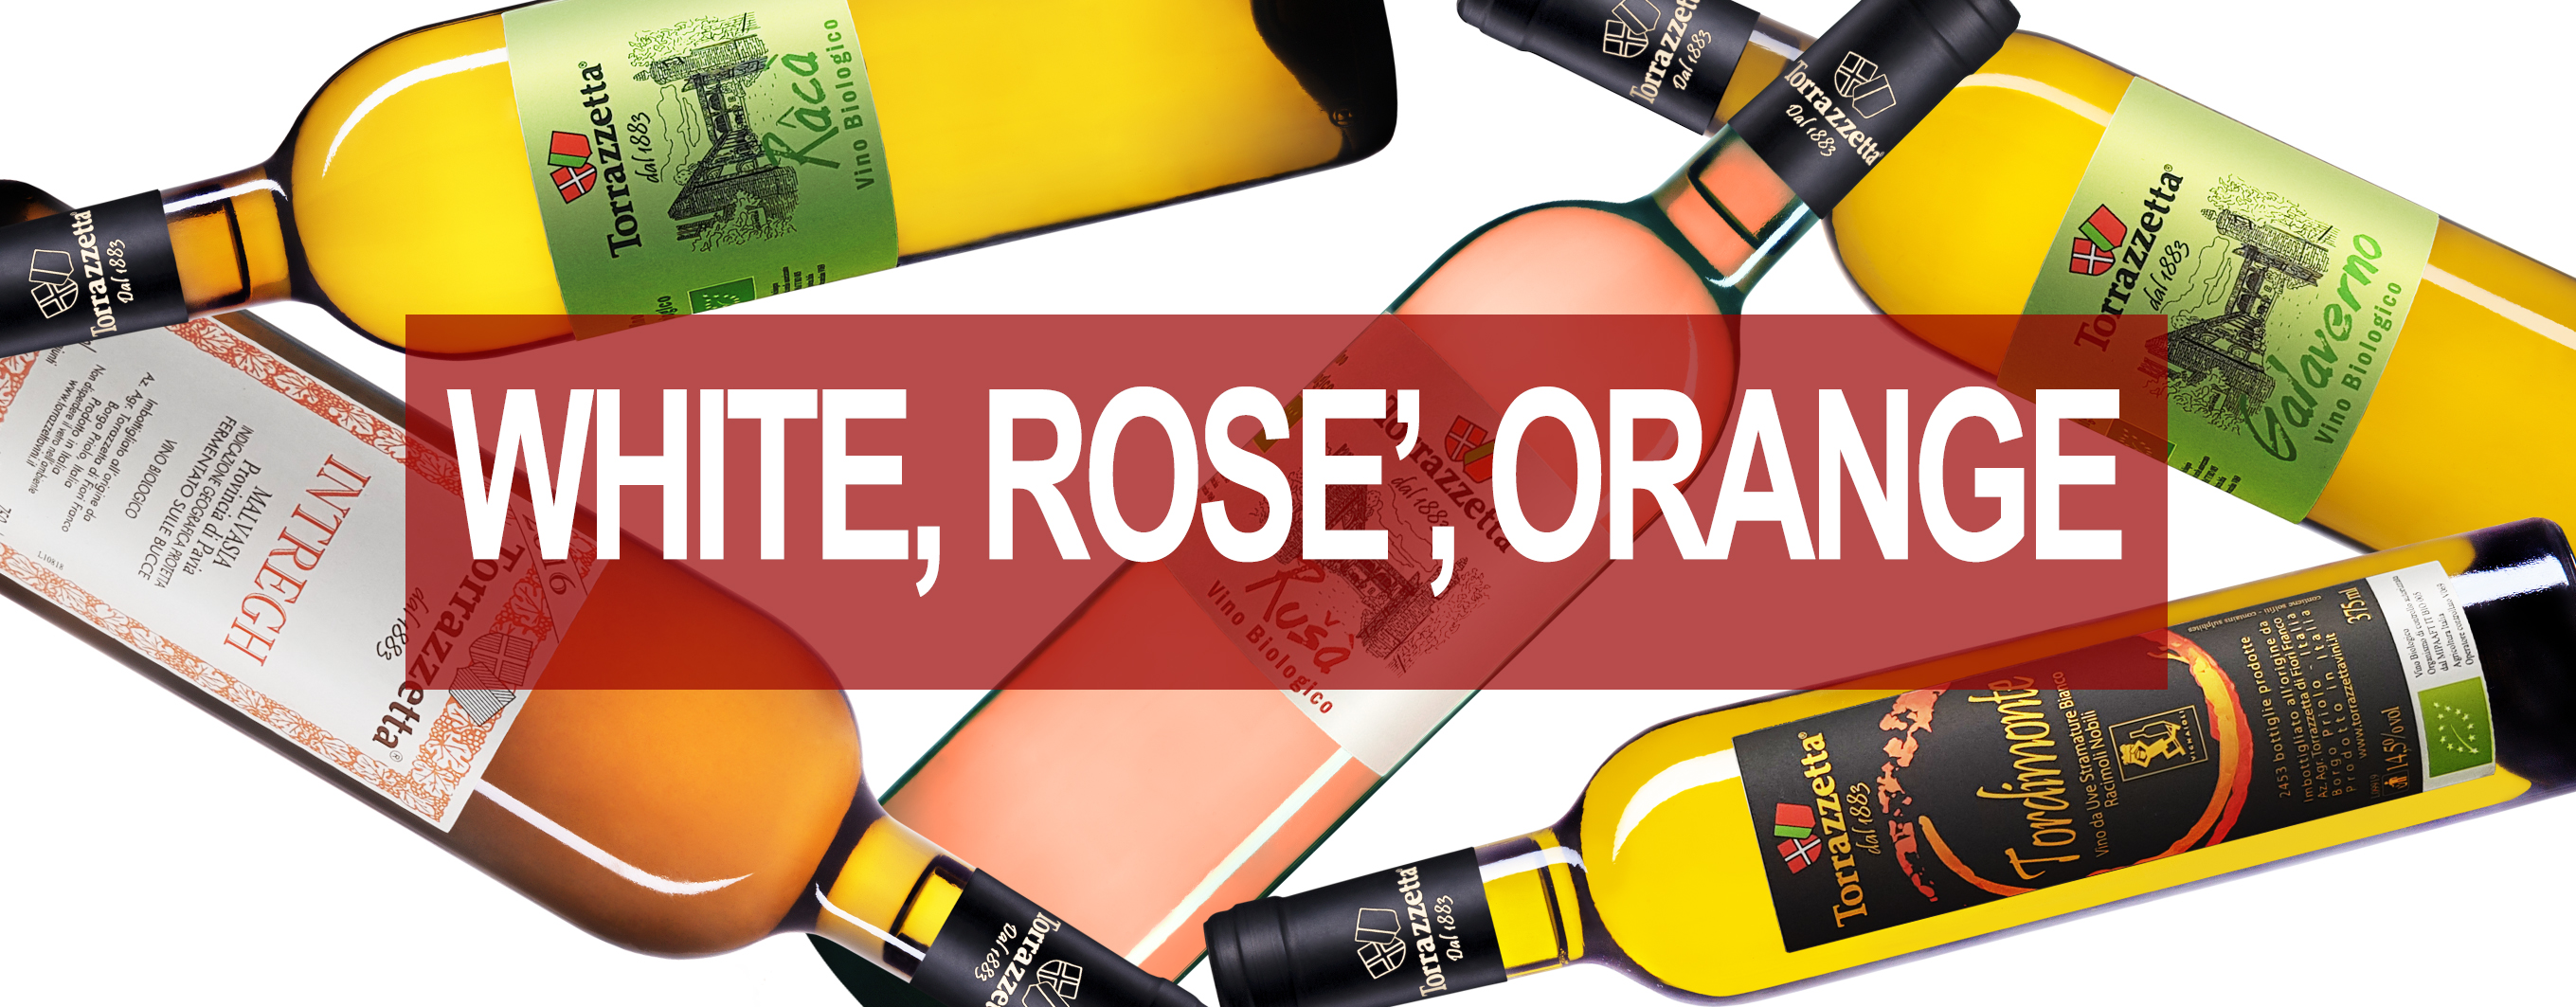 White Rosè Macerated Wines Online Sale - Organic Wines Oltrepò Pavese, Pavia, Lombardy, Italy